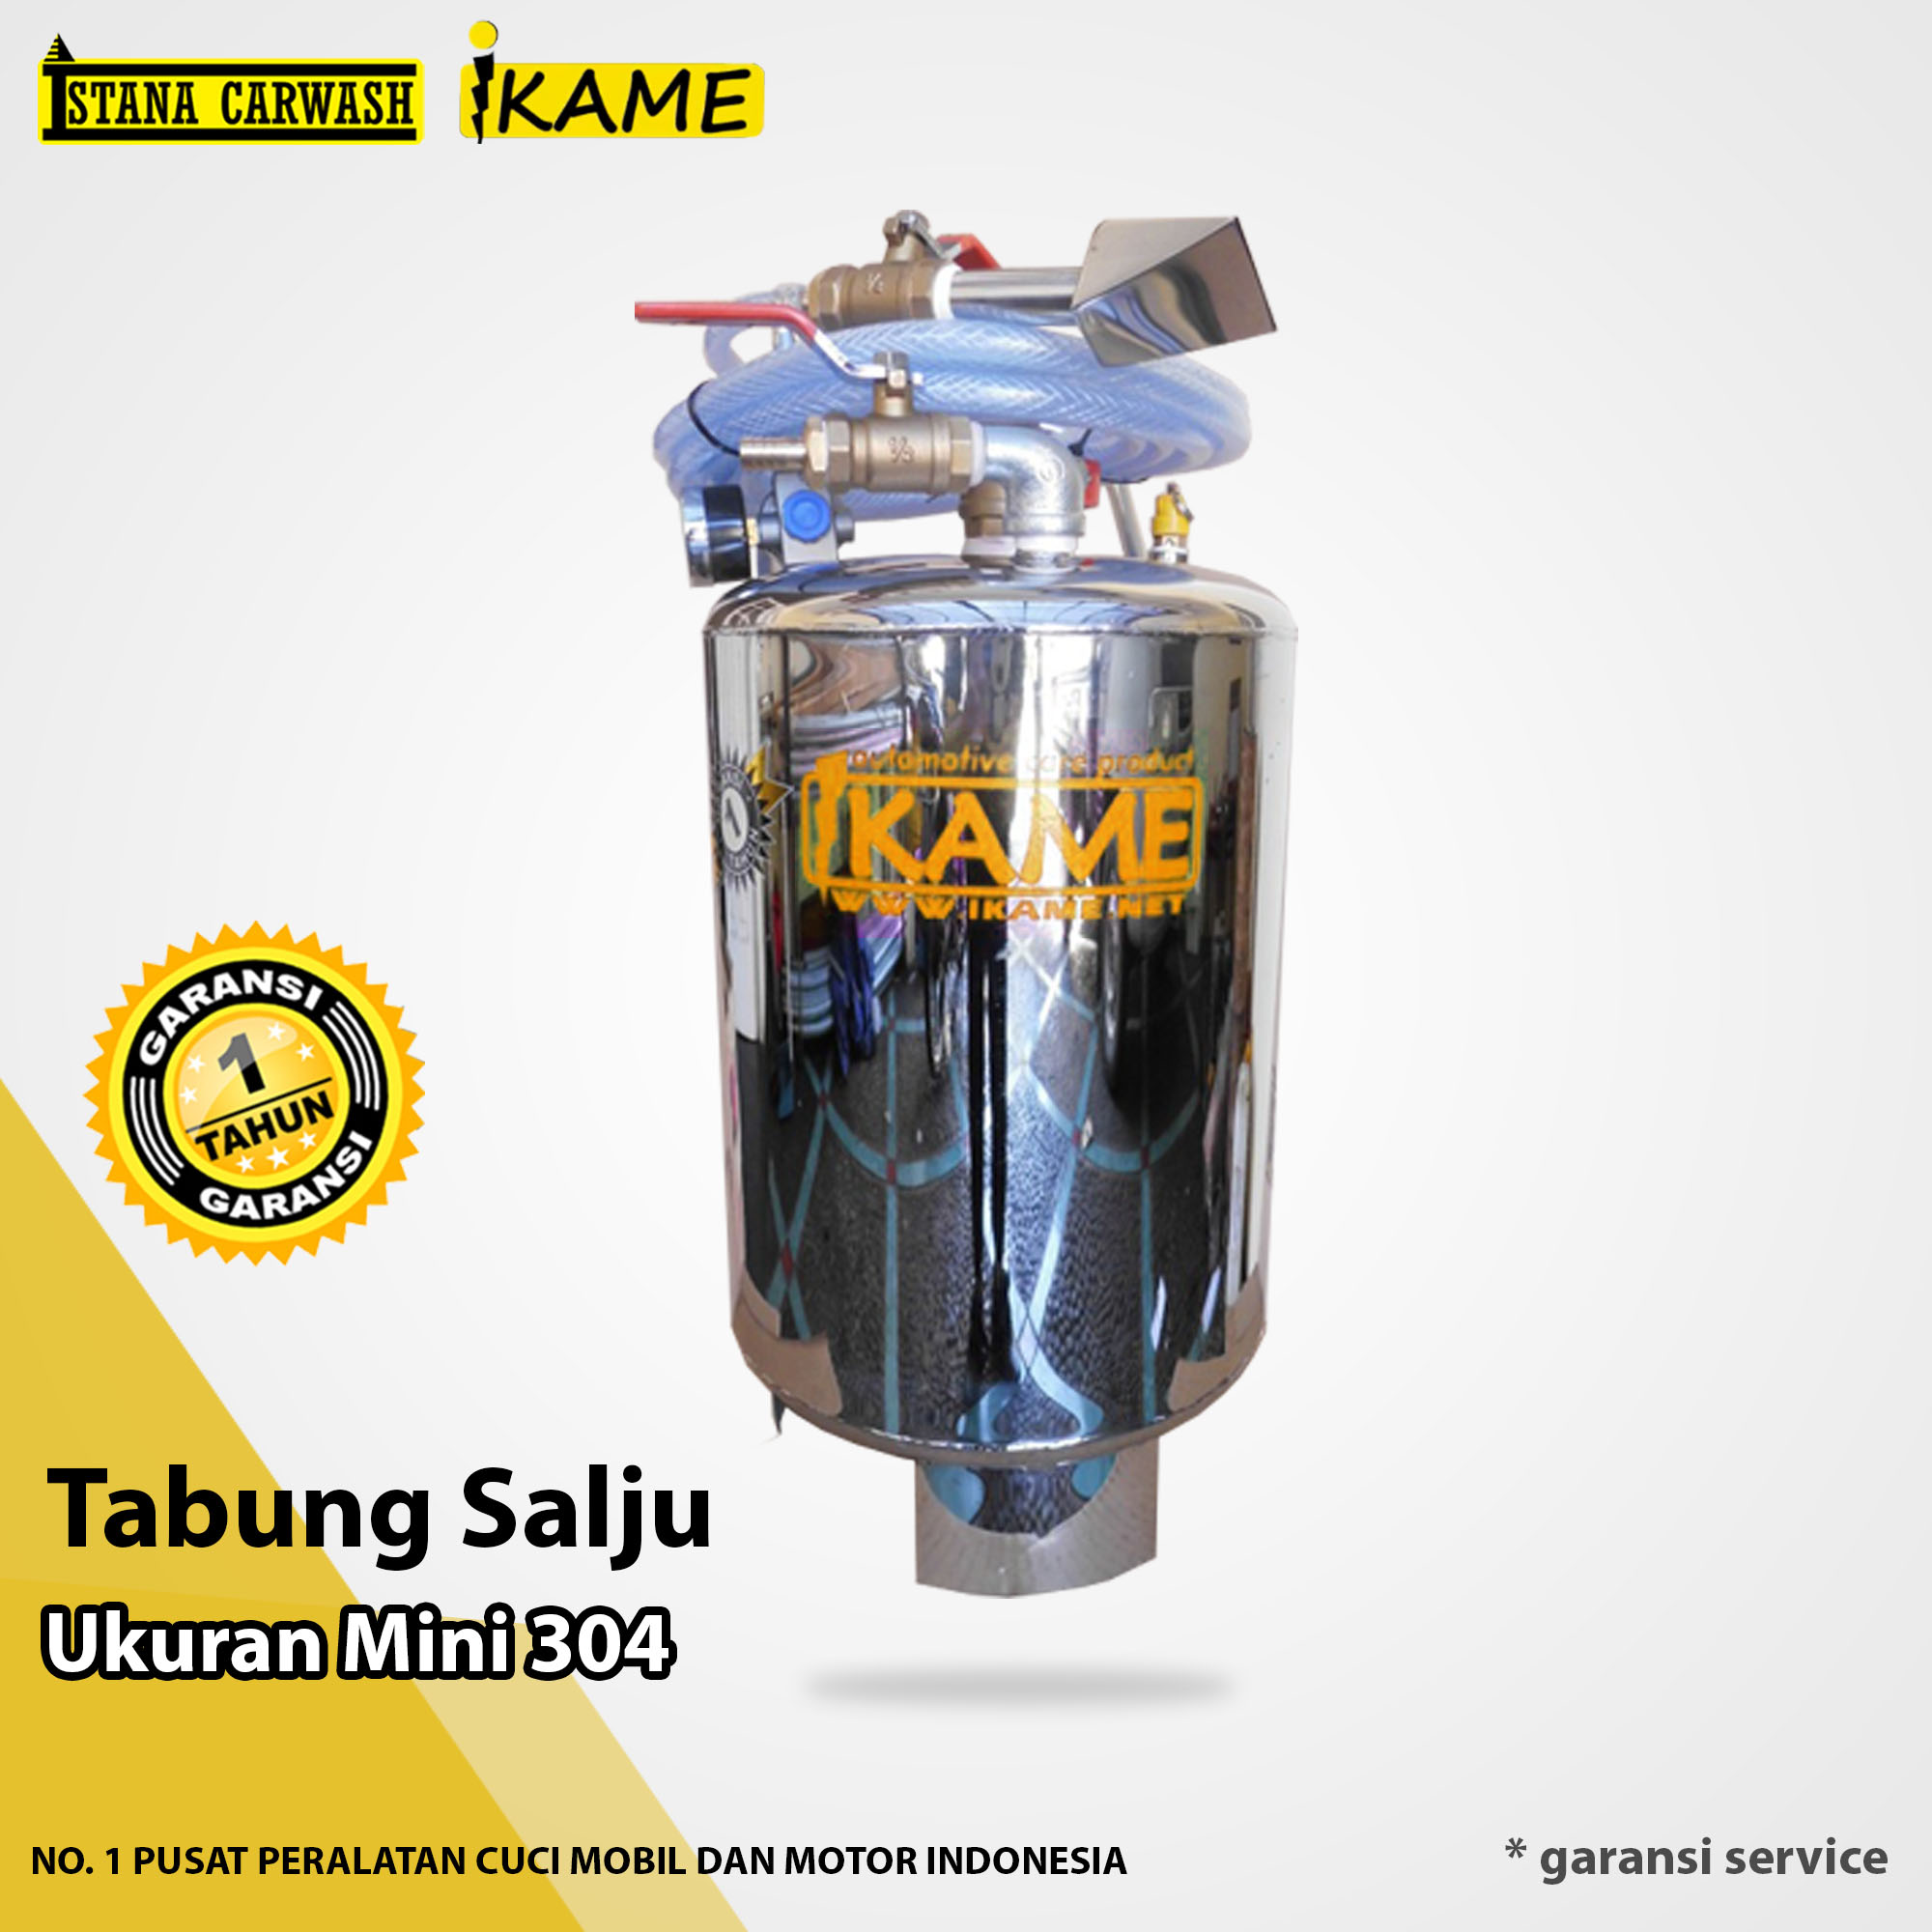 Tabung Stainless Mini Ikame 304